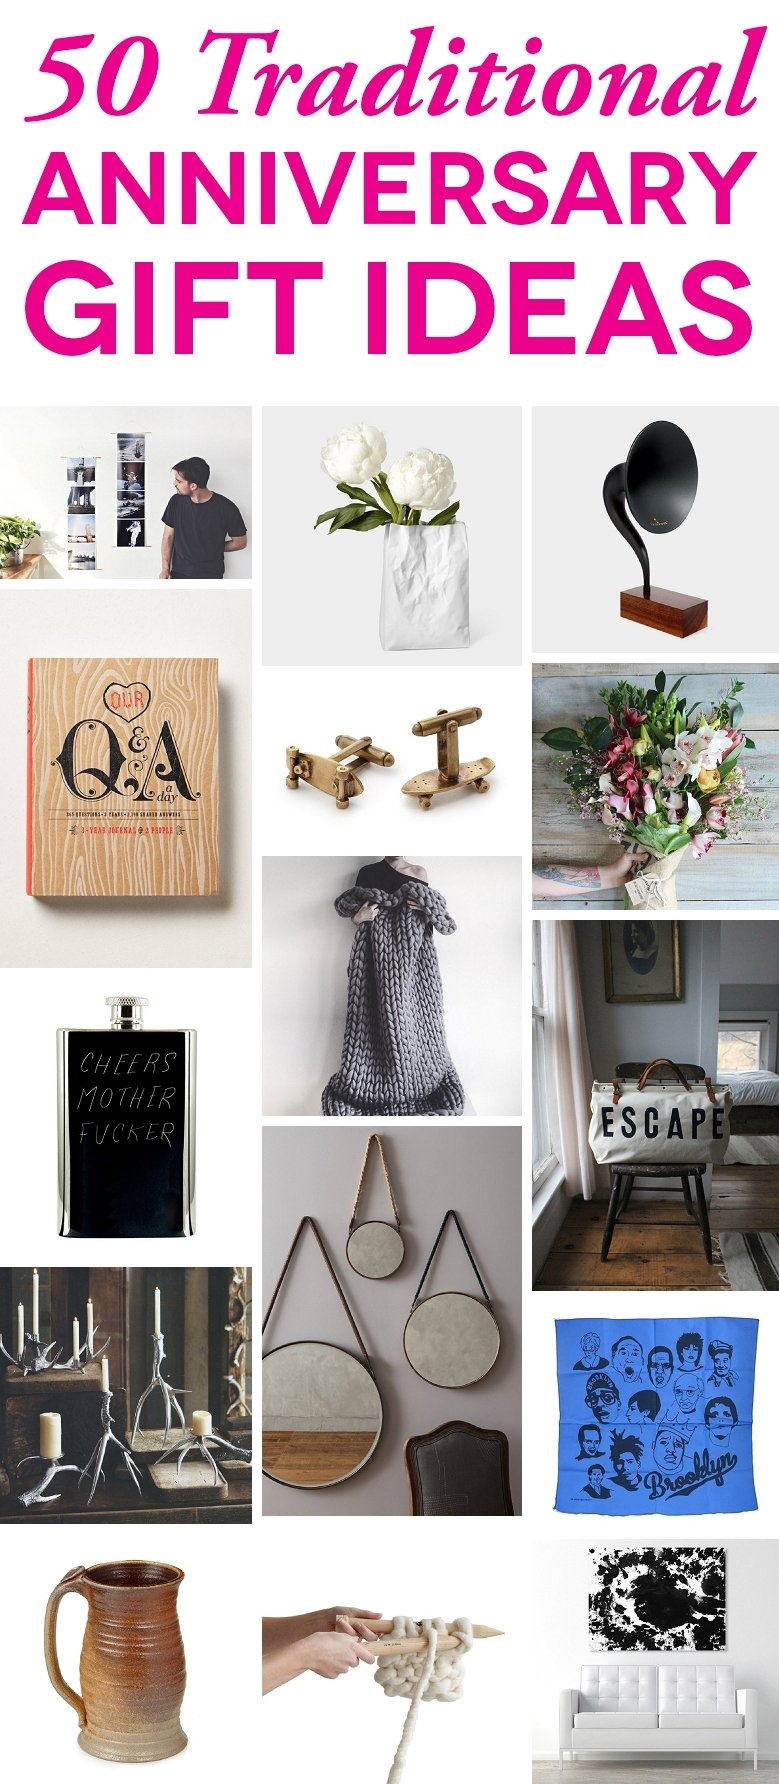 10 Attractive Gift Ideas For Anniversary For Him traditional anniversary giftsyear a practical wedding 28 2020